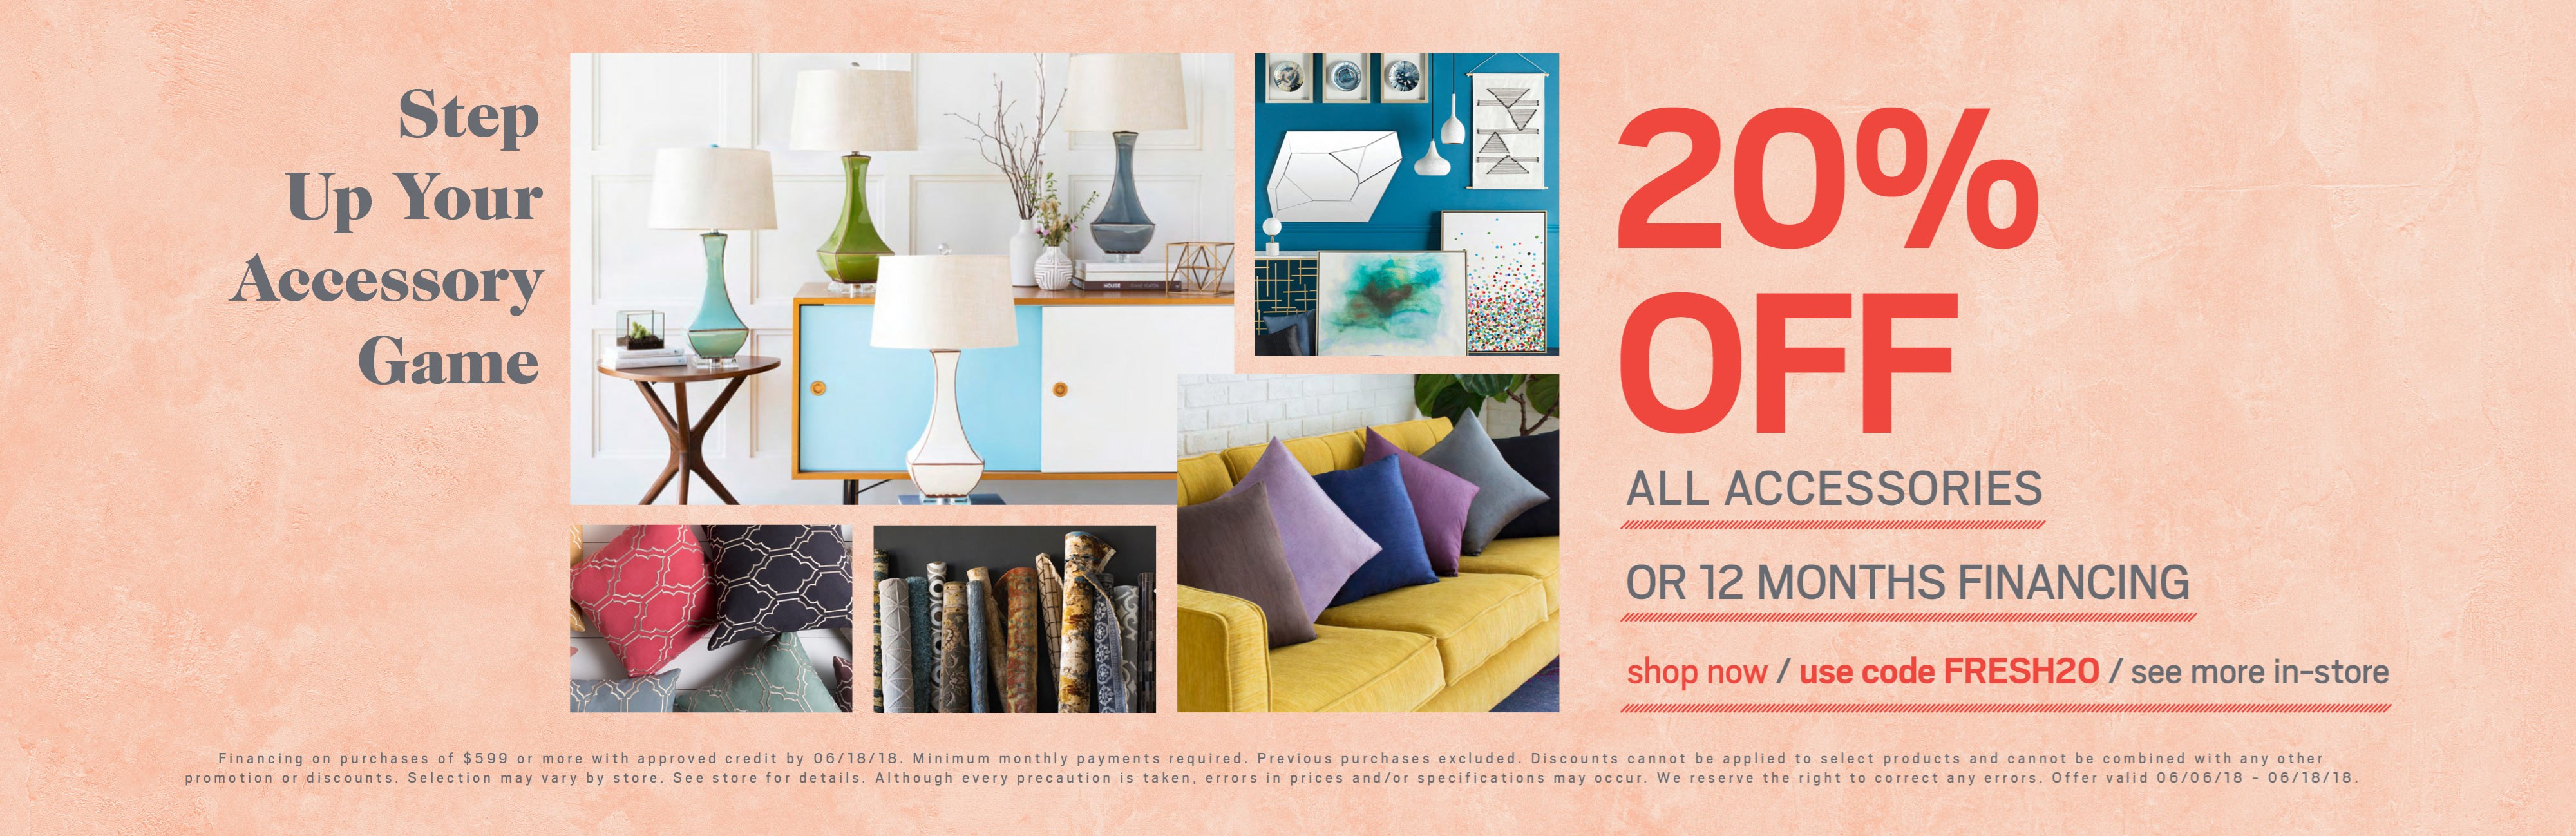 20% off all accessories or special financing available; see store for details.